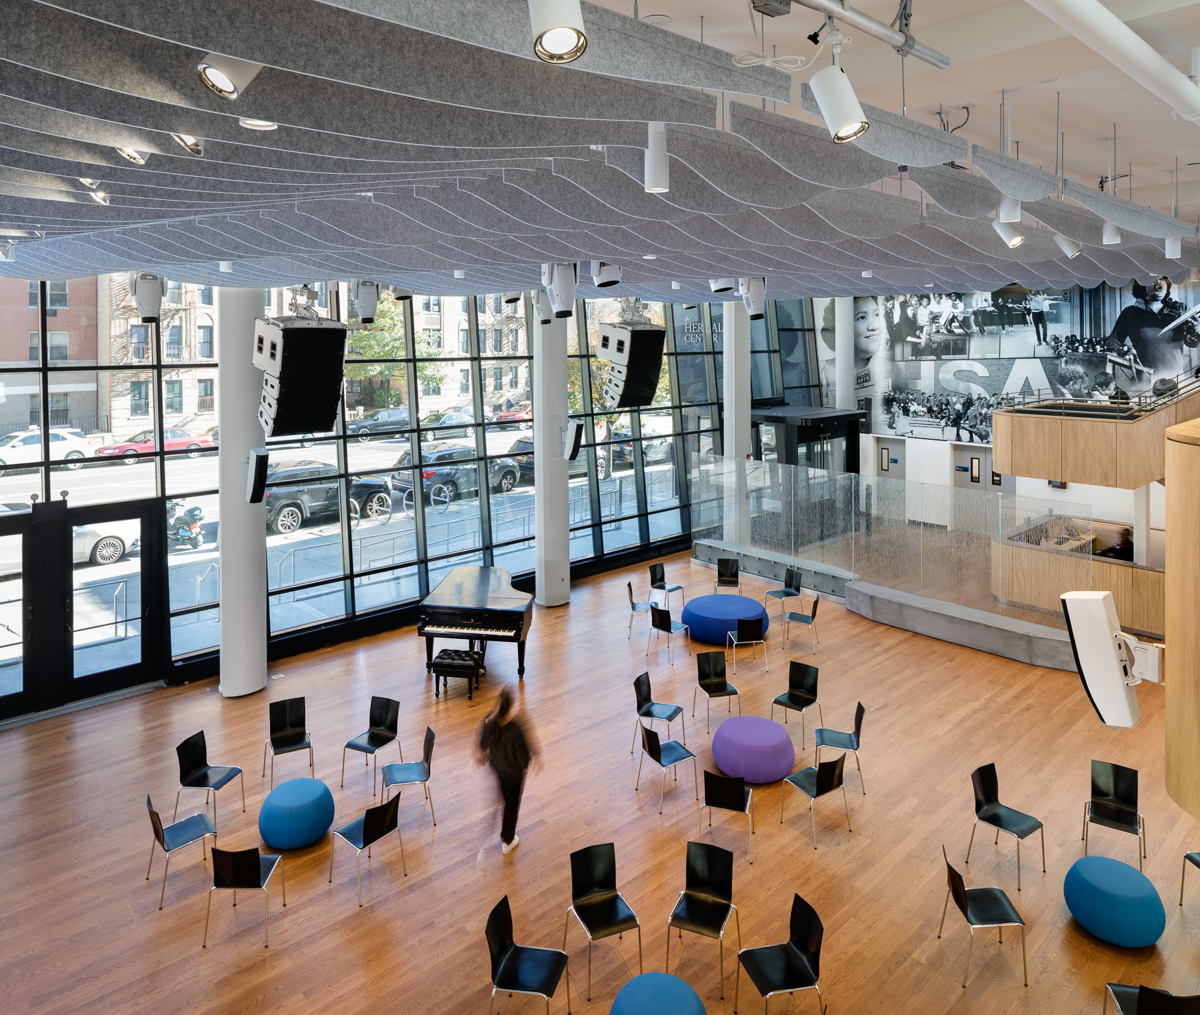 In order to guarantee optimal acoustics in the space, the design team recommended a precise angling of the towering two-story glass wall, an approach that had been successfully engaged by the firm for the Appel Roomat Jazz at Lincoln Center.  - Photo by Amy Barkow